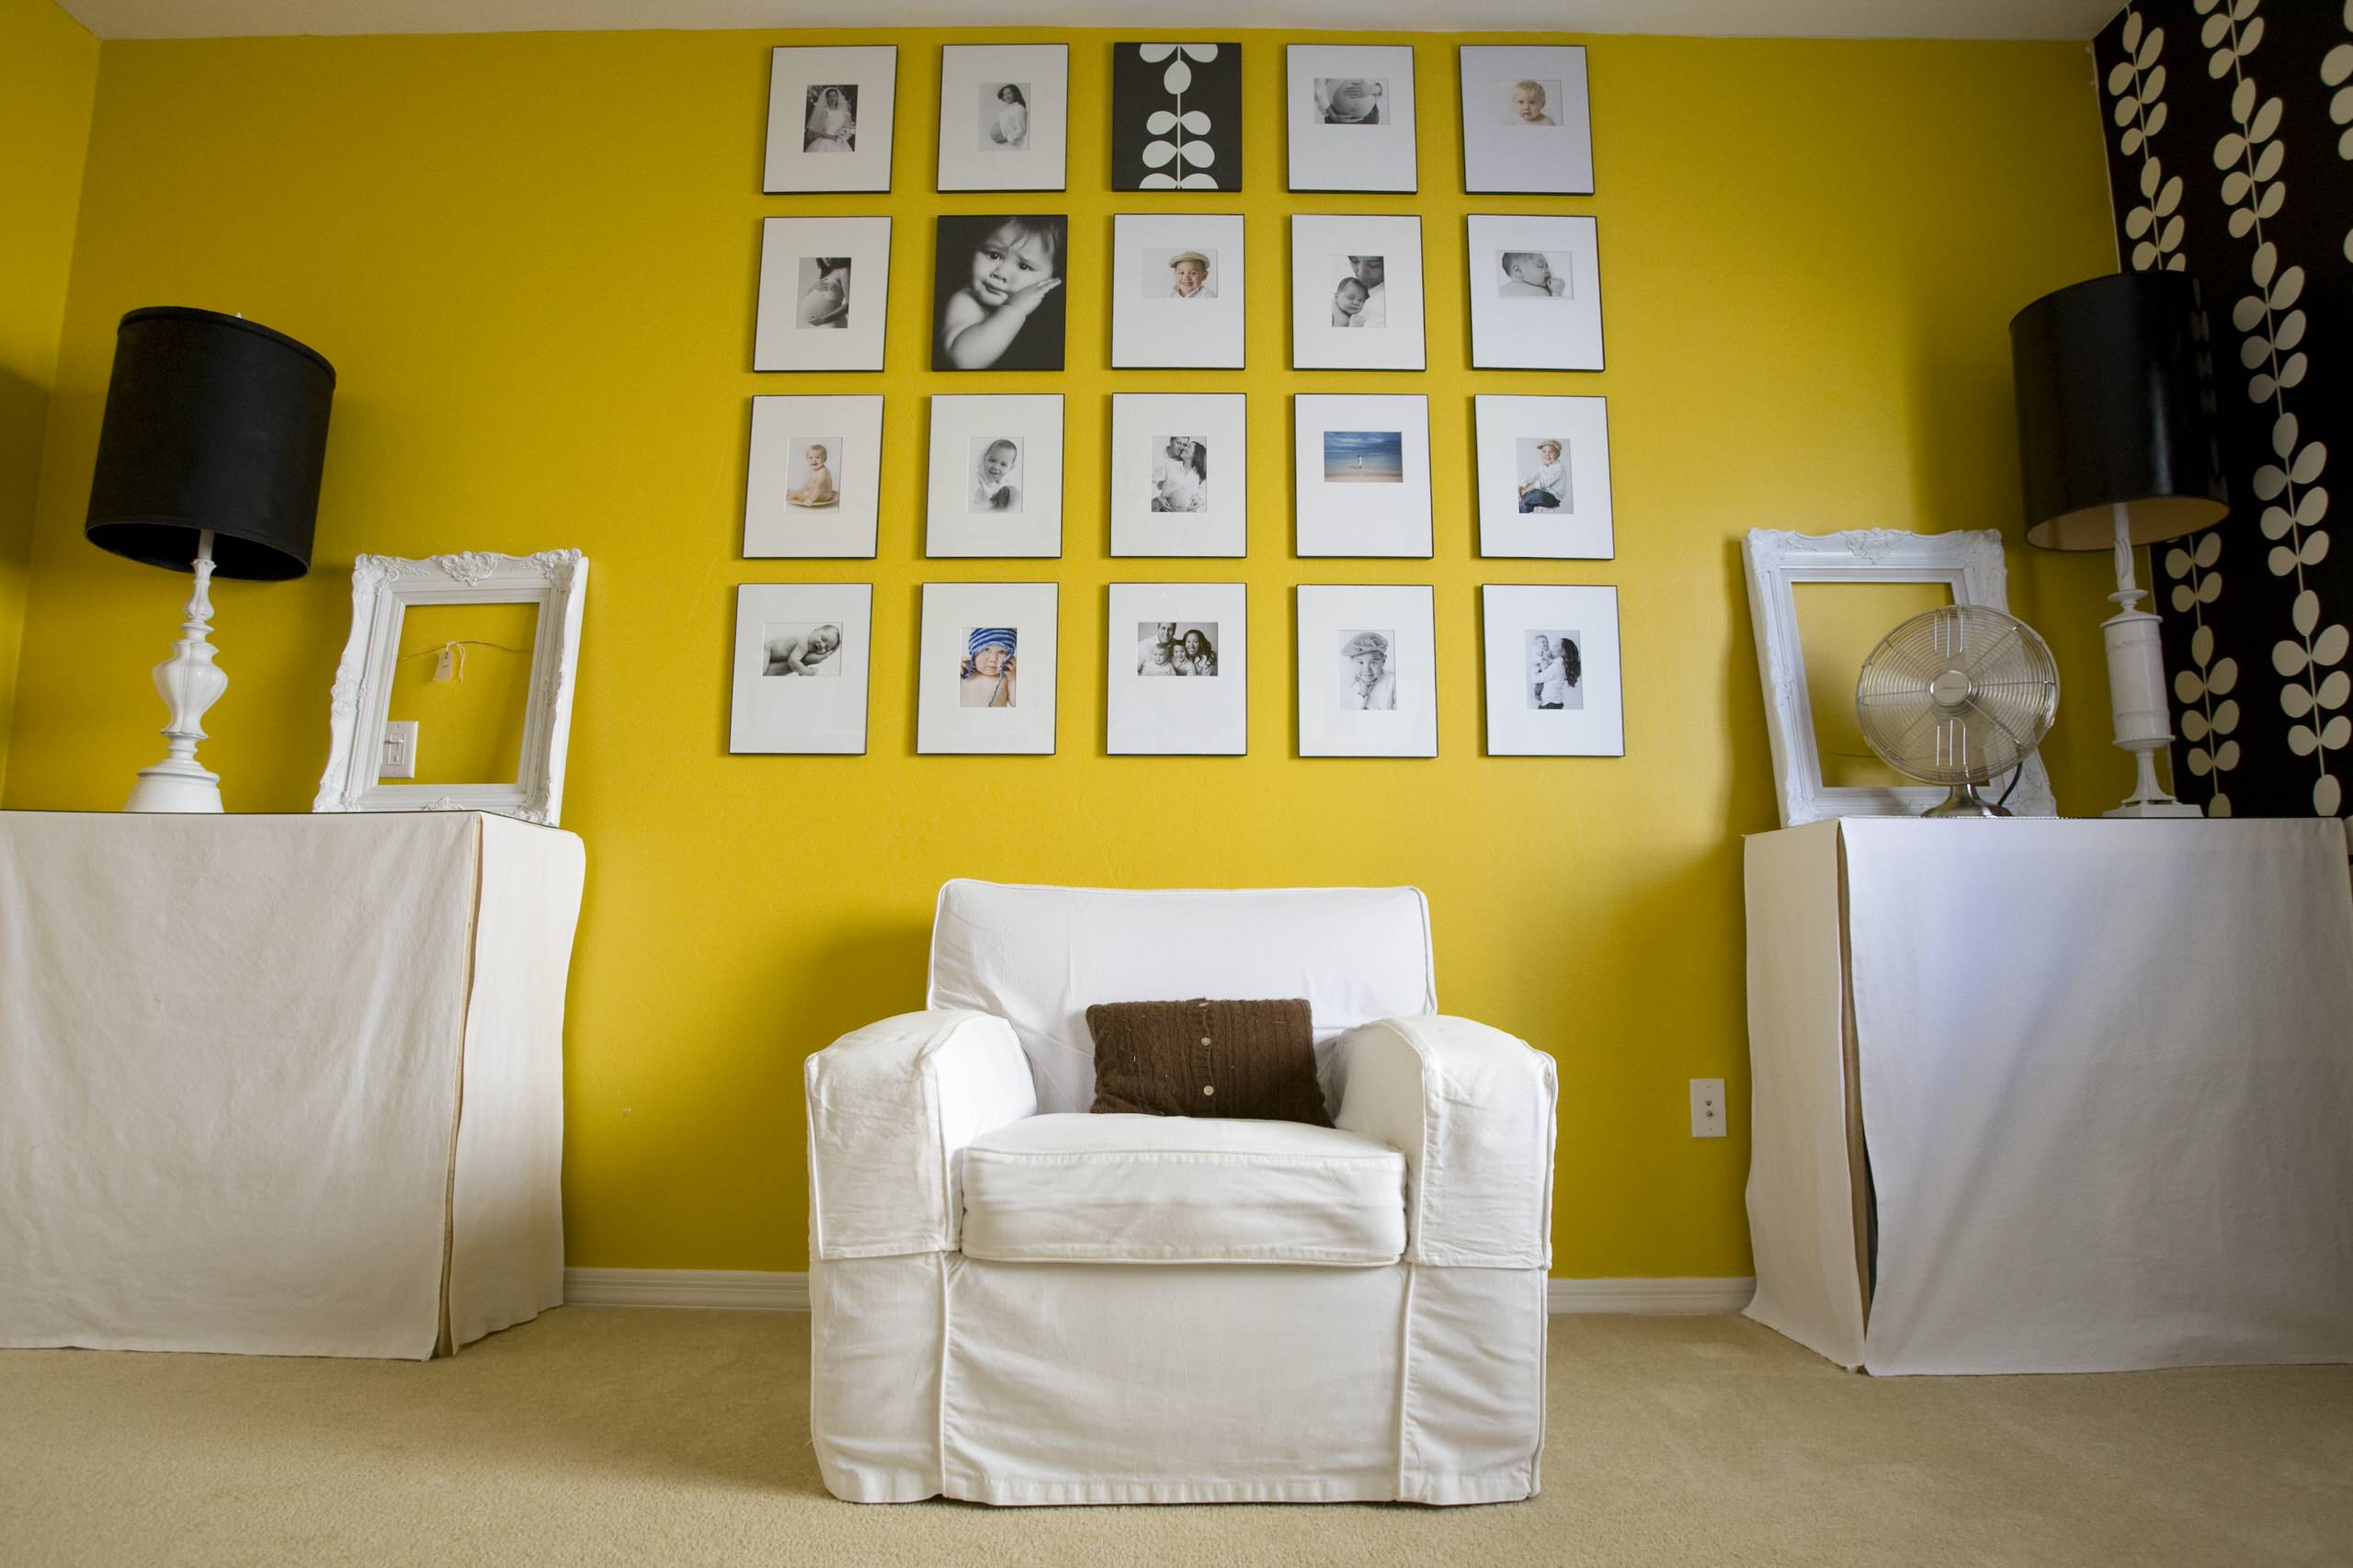 Photo Collage Ideas for Decorating Room: Drum Lamp Shades And End Tables With Photo Collage Ideas For Gallery Wall In Home Office Plus Slipcovers Armchair Also Table Fan With Wallcoverings And Yellow Walls